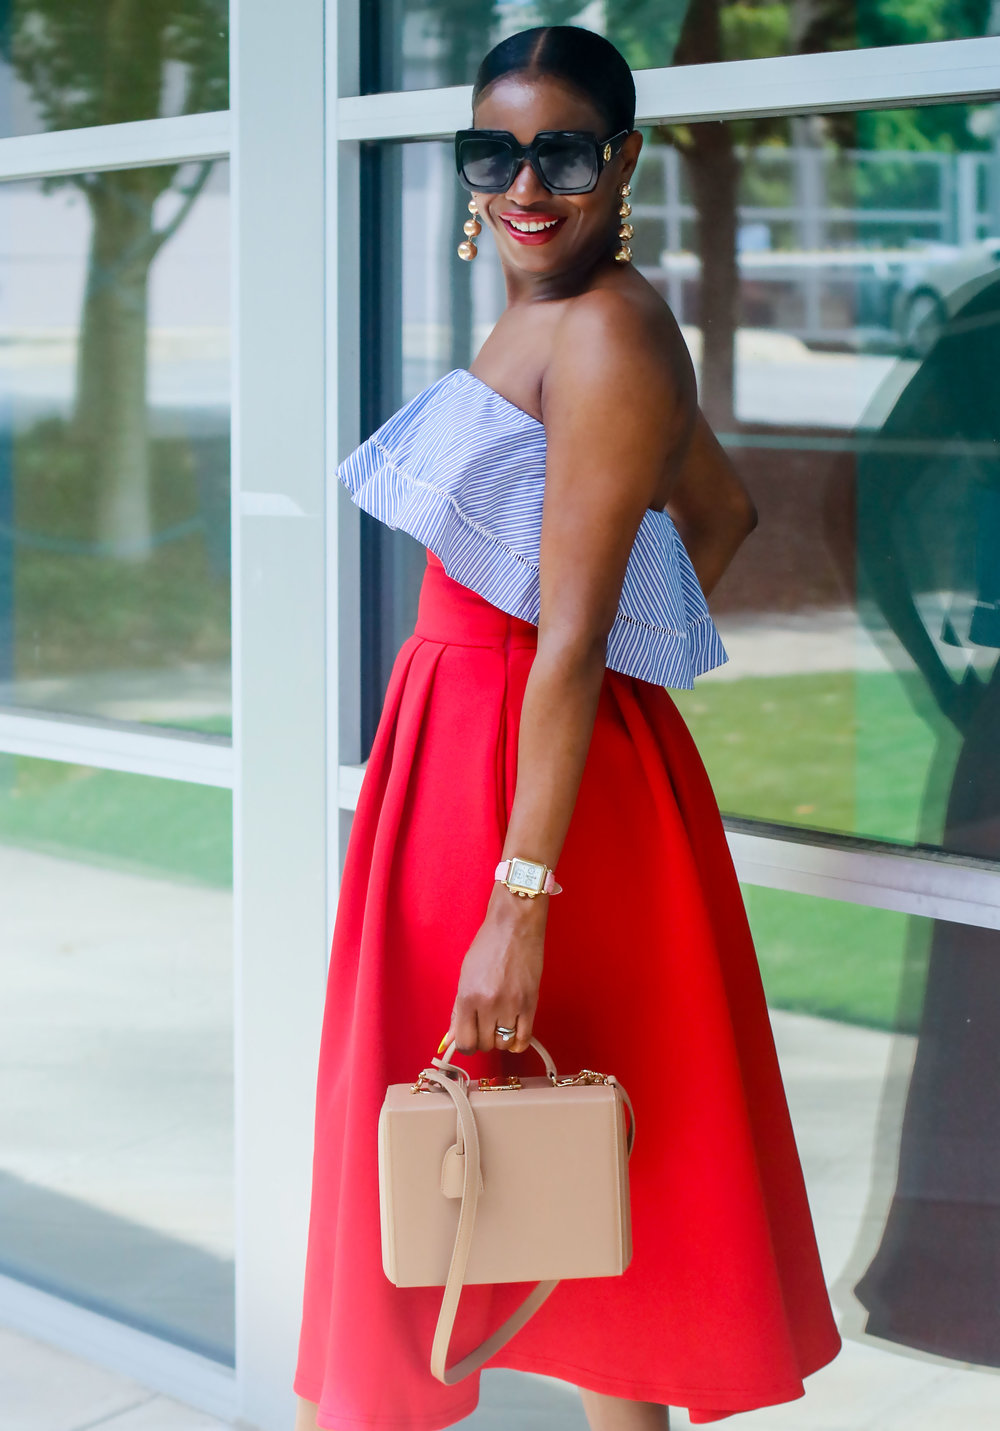 FASHION BLOGGER DRESSED IN RED WHITE AND BLUE.jpg